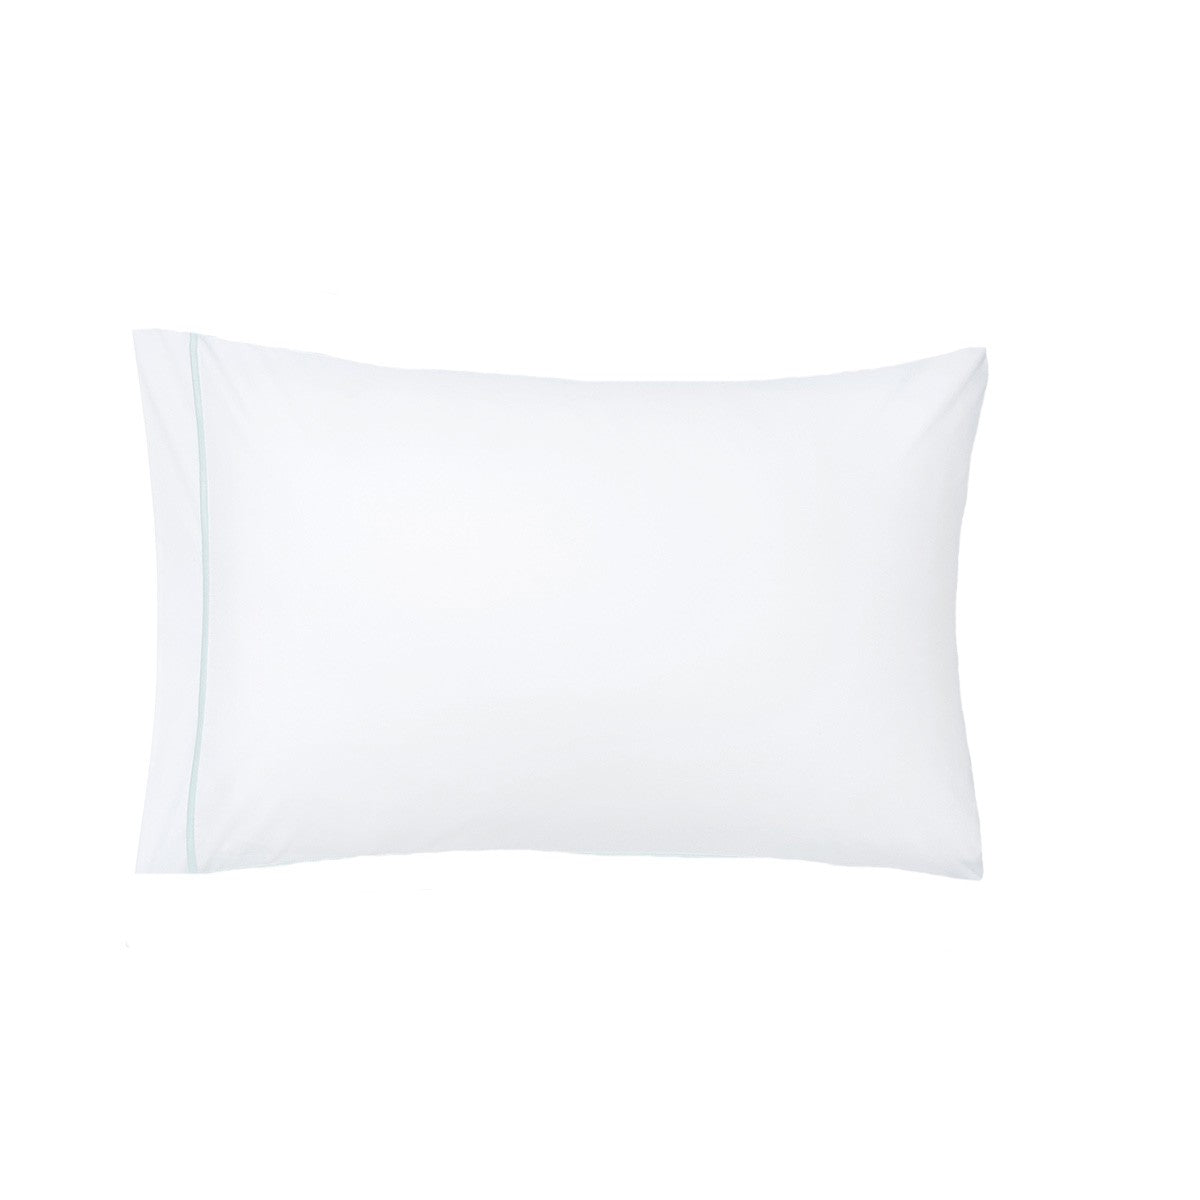 Athena Blanc King Pillow Case